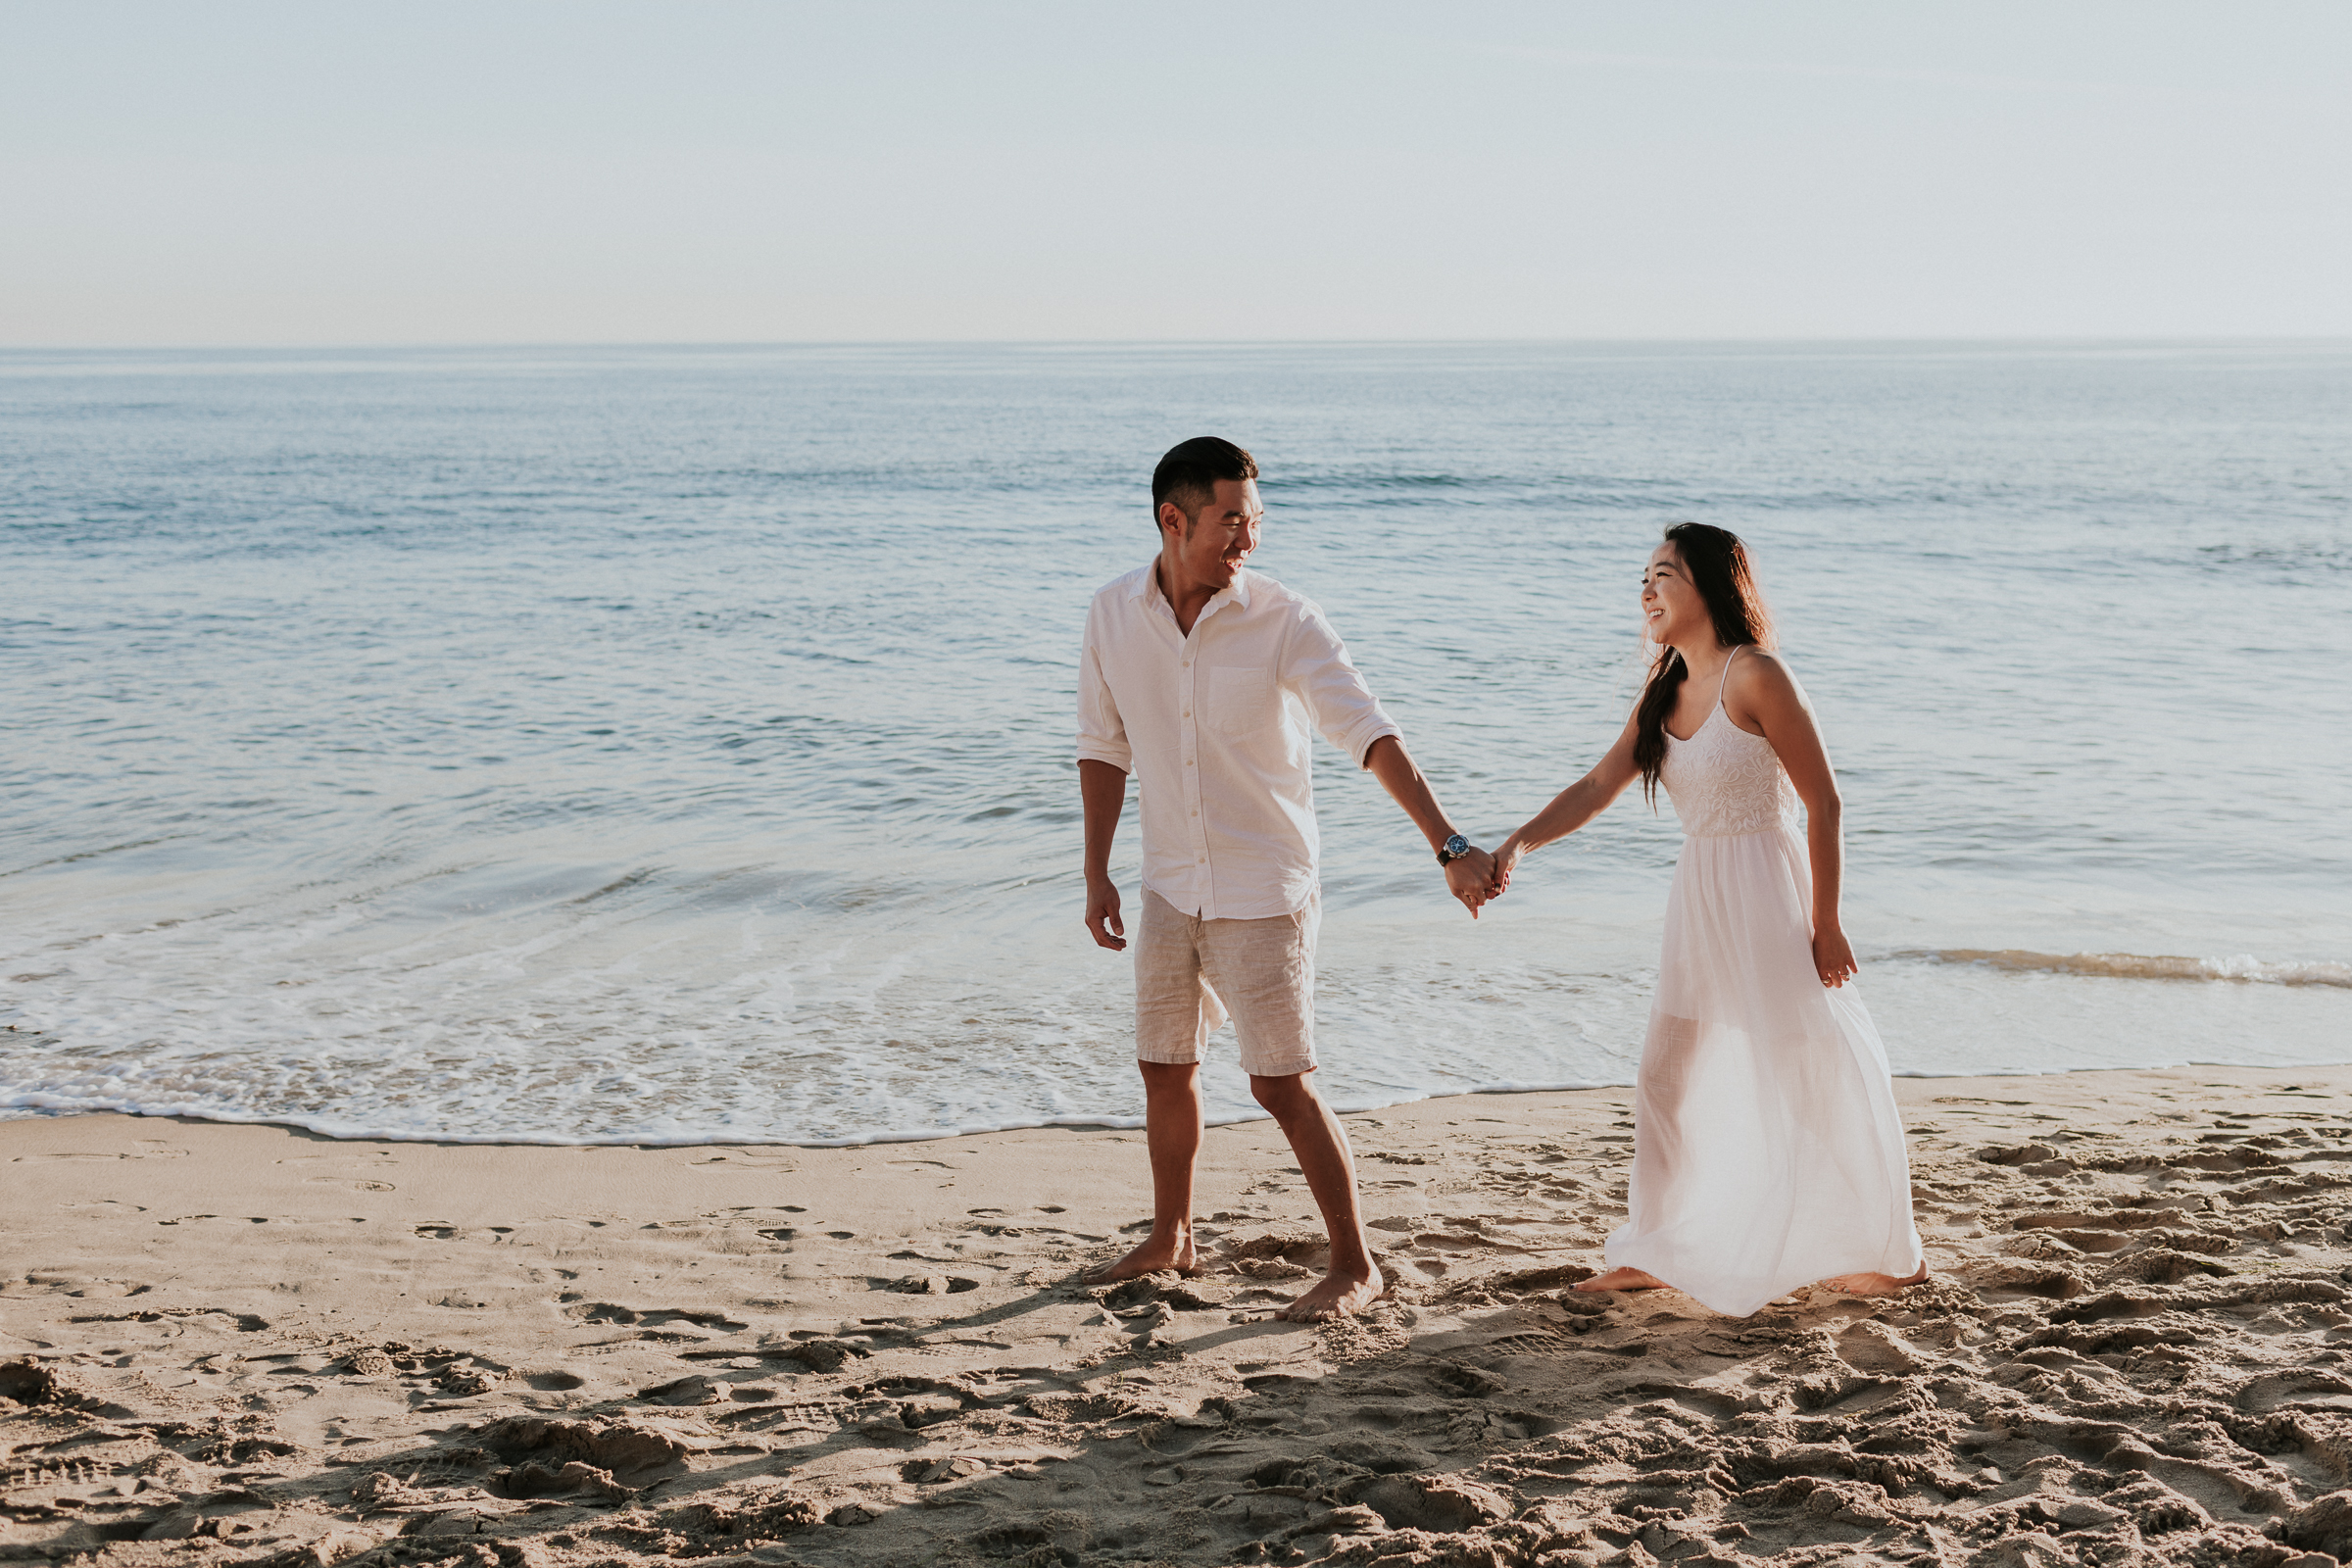 Malibu-El-Matador-State-Beach-Sunset-Engagement-Photos-Los-Angeles-Documentary-Wedding-Photographer-25.jpg